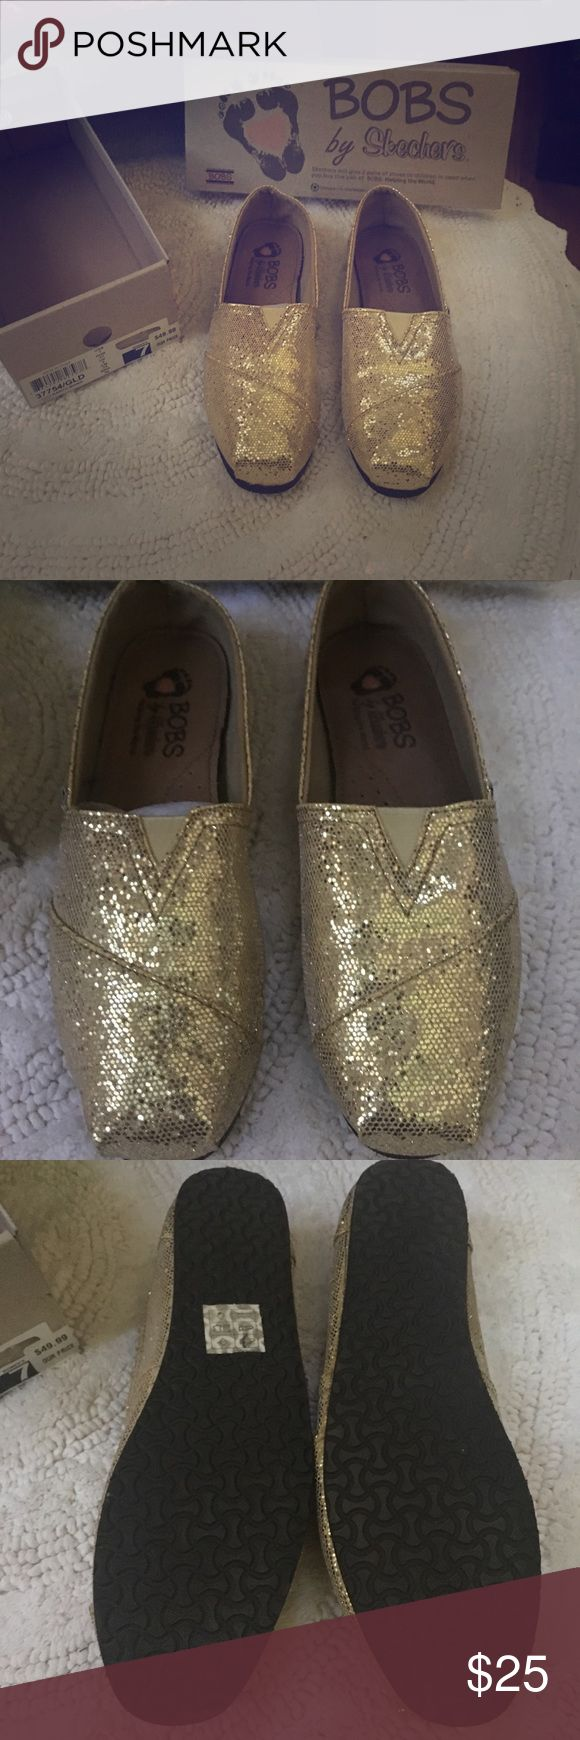 Brand new Bobs shoes Never worn Bobs Shoes Bobs by Skechers Shoes Flats & Loafers